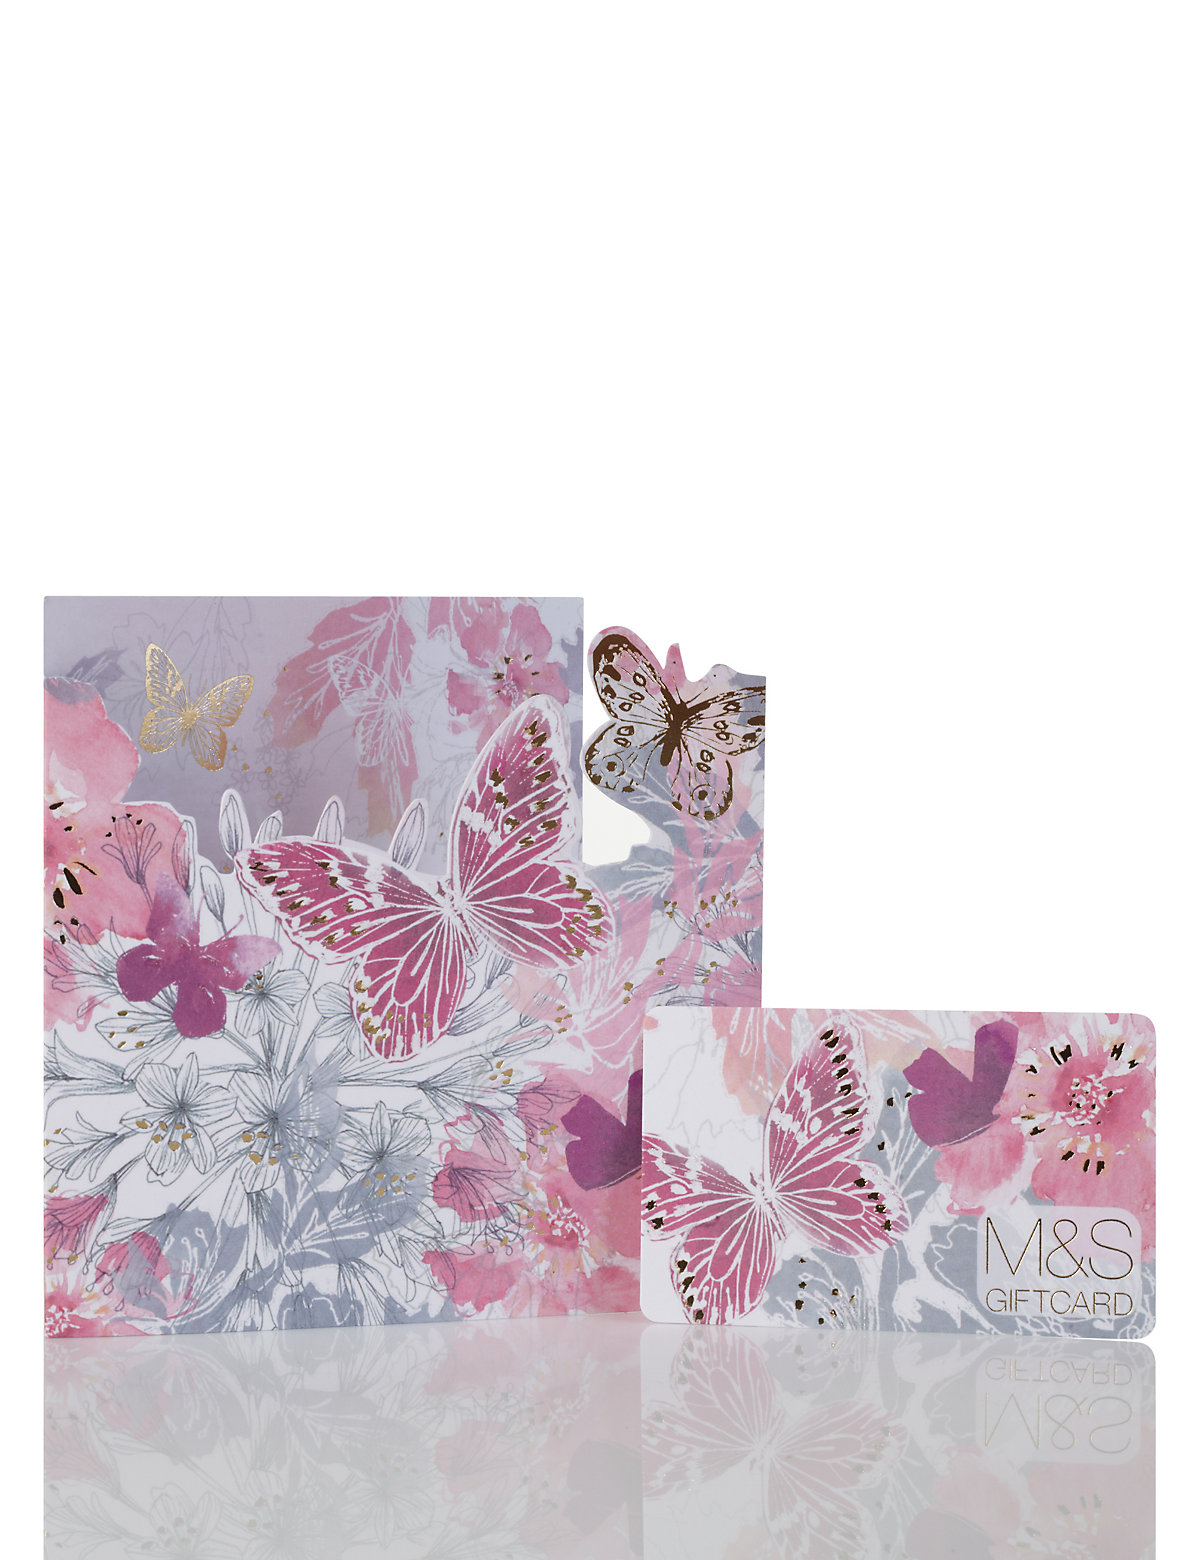 Butterfly Gift Card £1500